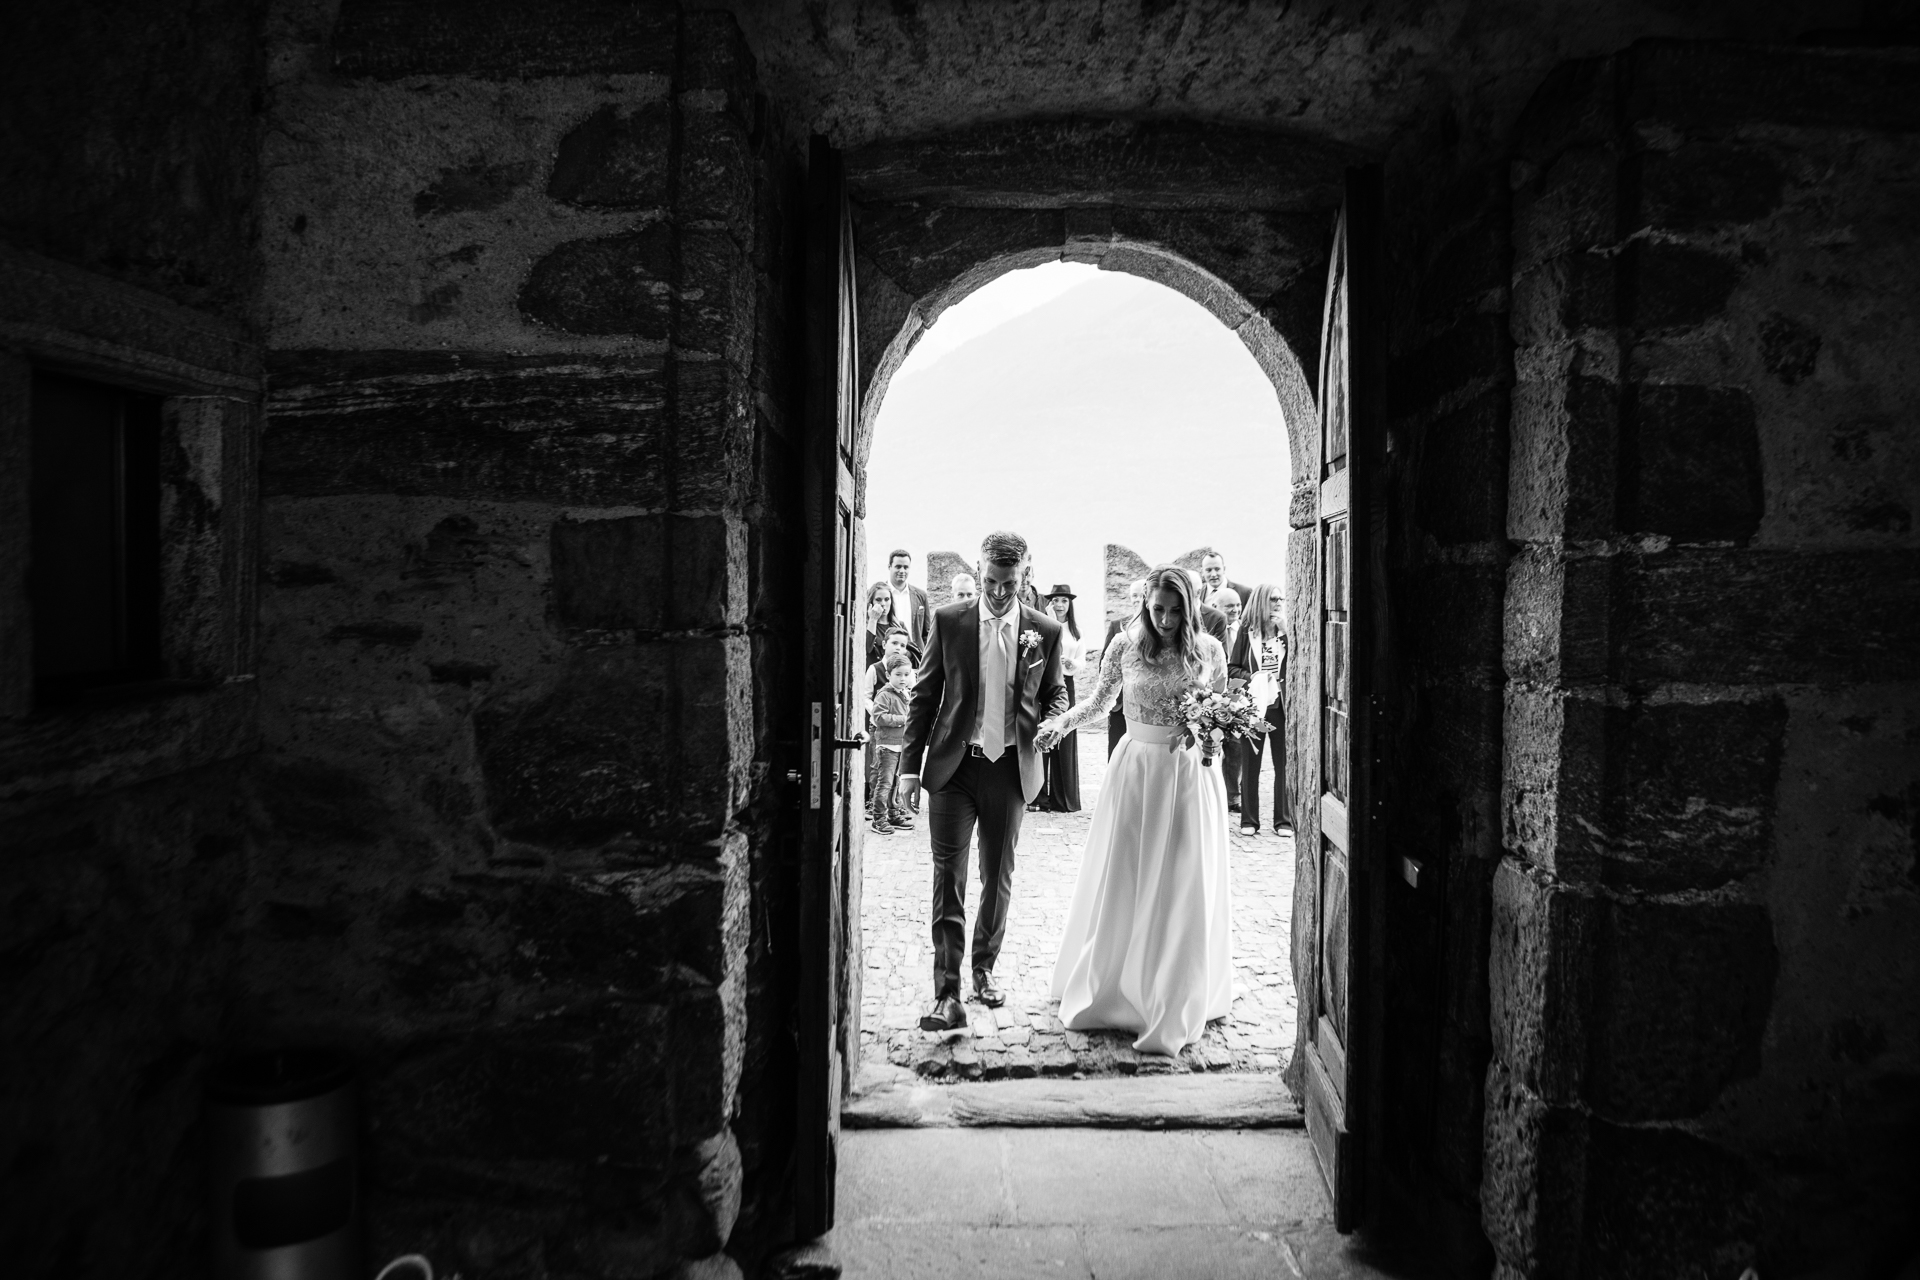 Bellinzona (CH) Wedding Photography | The inside of the castle is made up of rustic stone walls